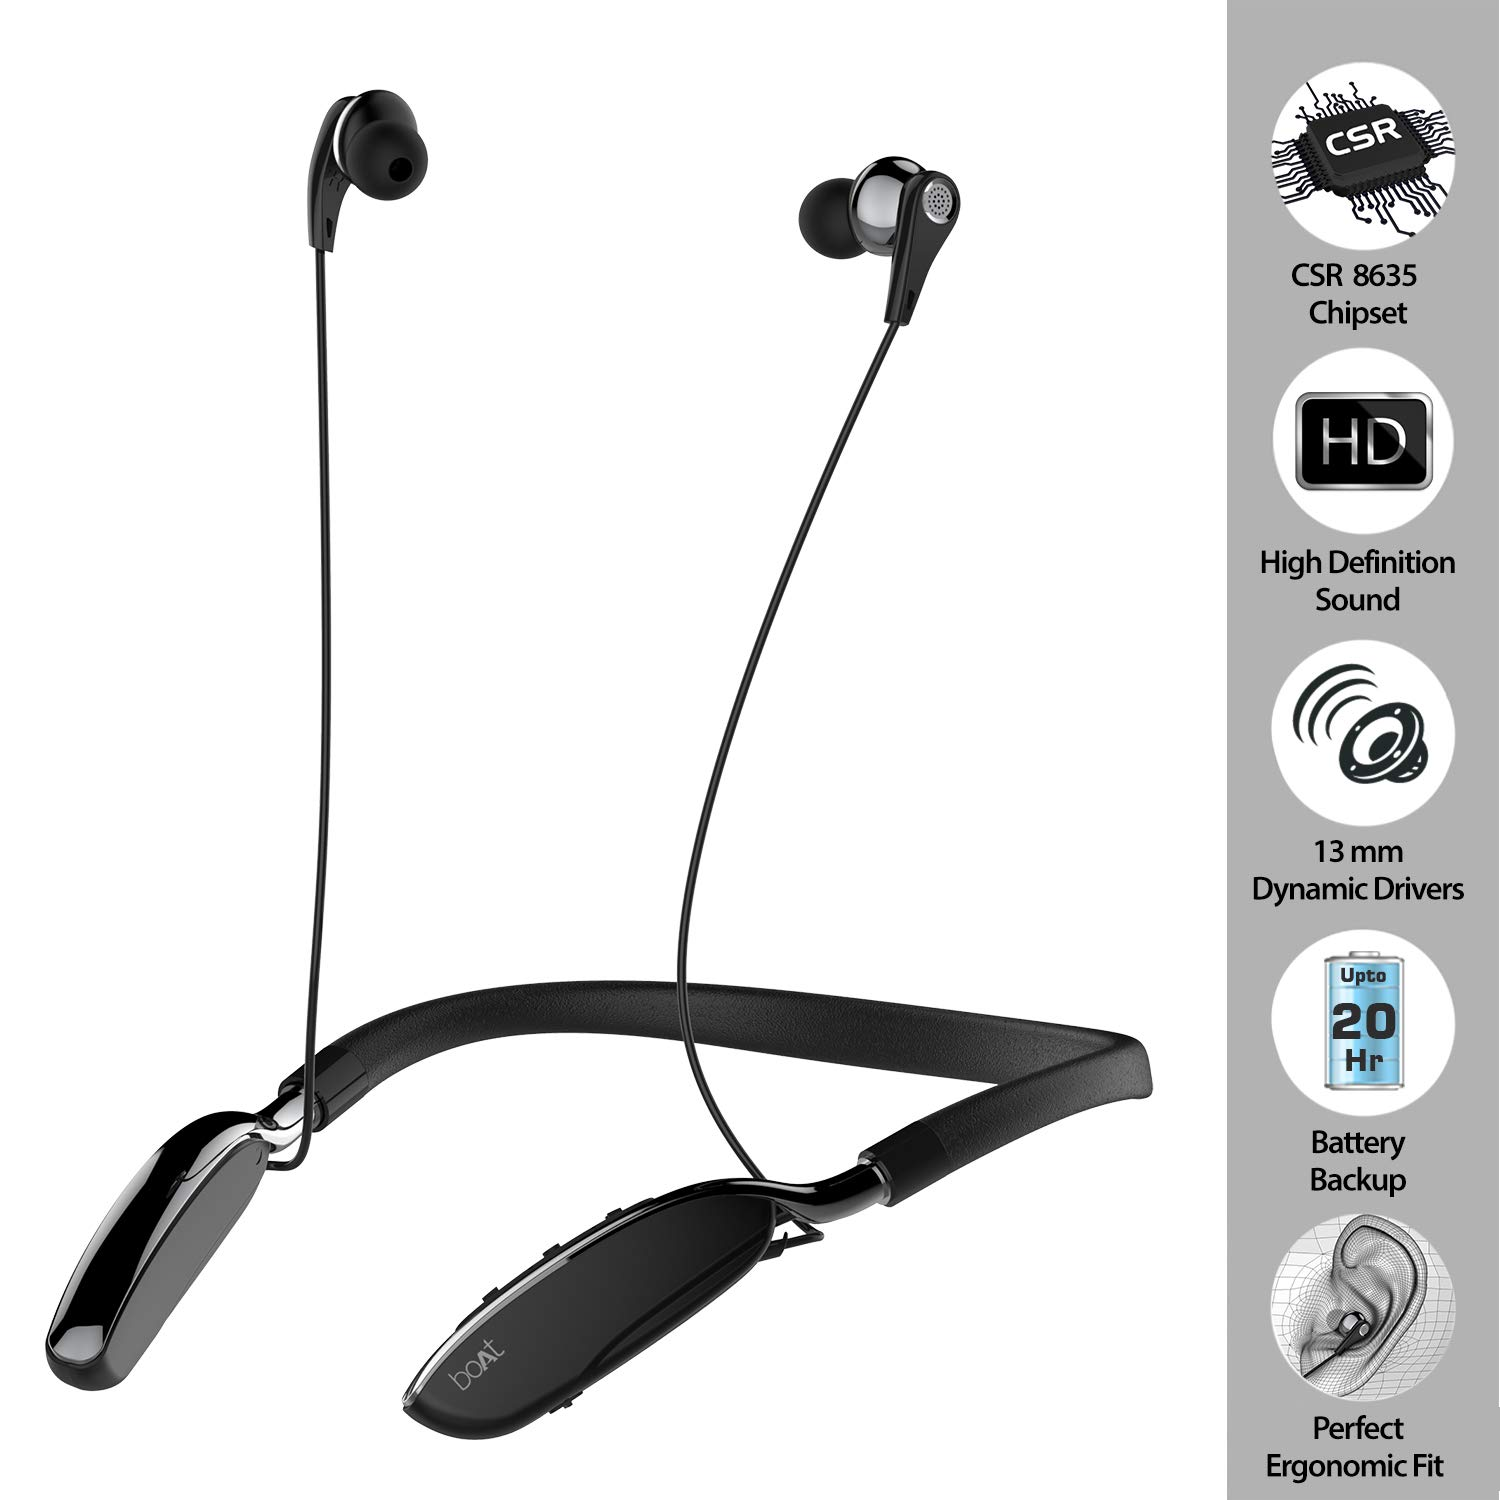 Boat Rockerz 385 Wireless Bluetooth Earphone With Mic Amazon In Electronics